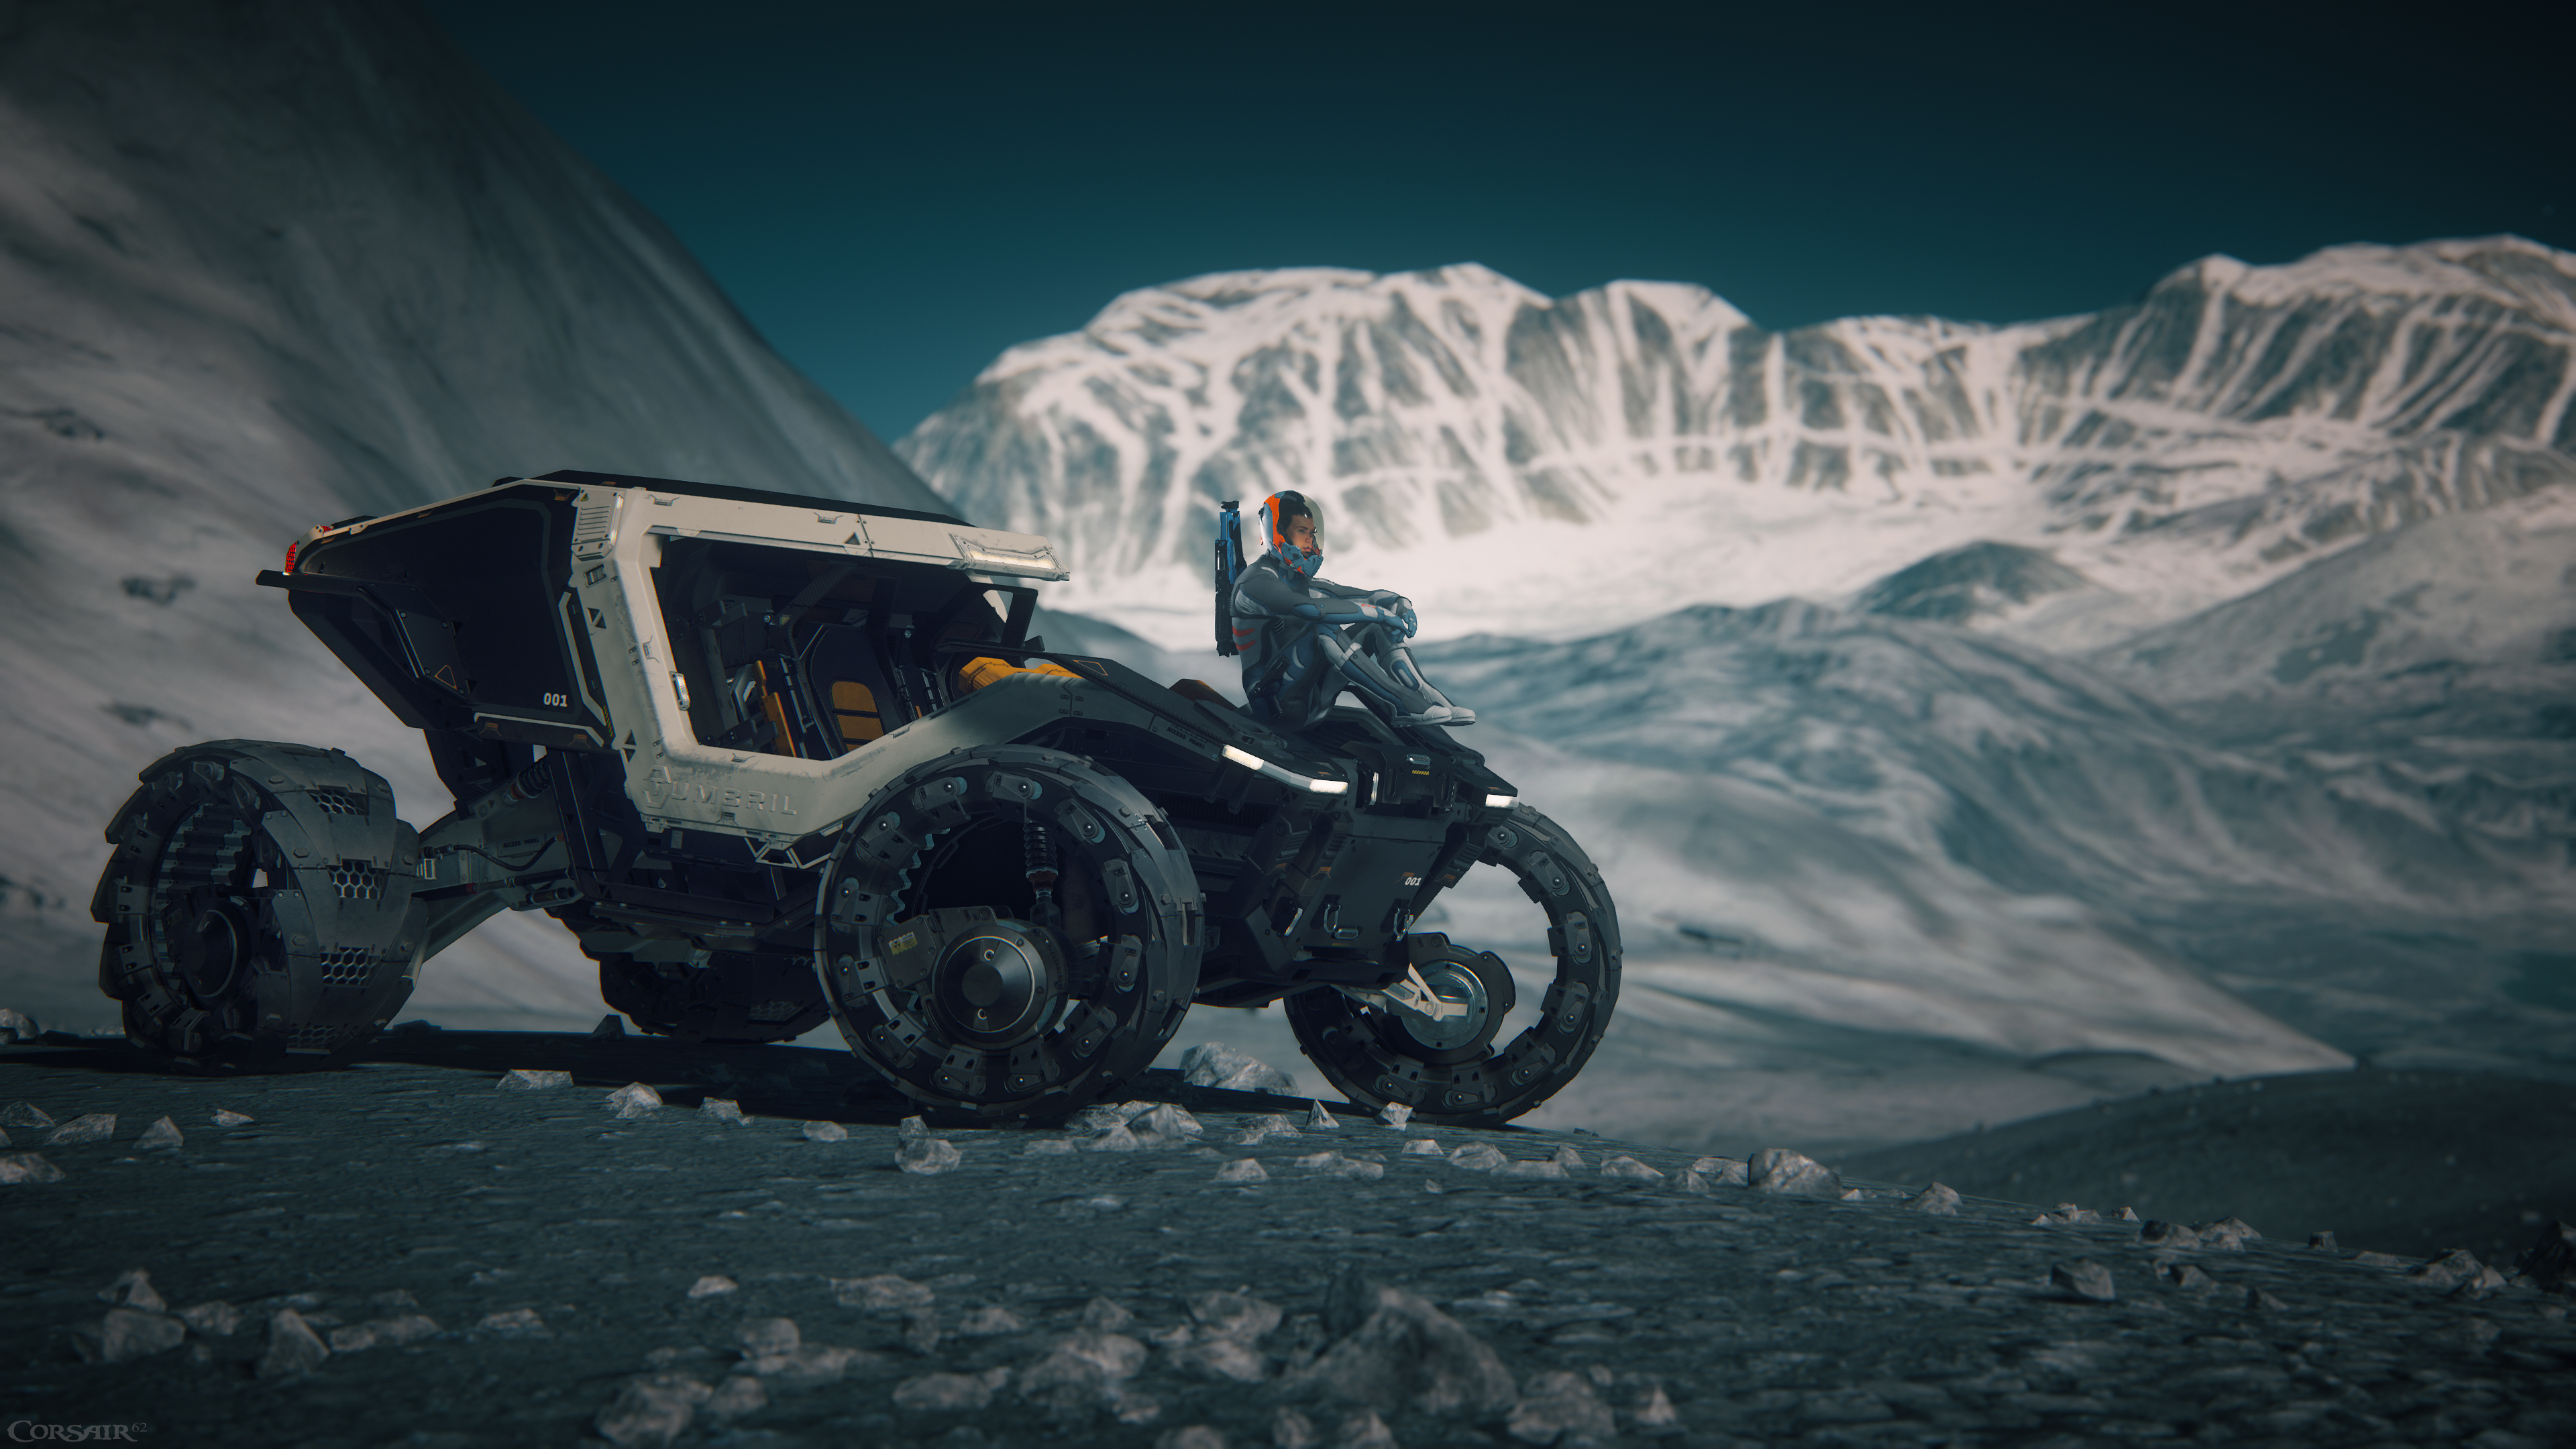 ride on yela star citizen 4k 1537690962 - Ride On Yela Star Citizen 4k - star citizen wallpapers, pc games wallpapers, hd-wallpapers, games wallpapers, 4k-wallpapers, 2018 games wallpapers